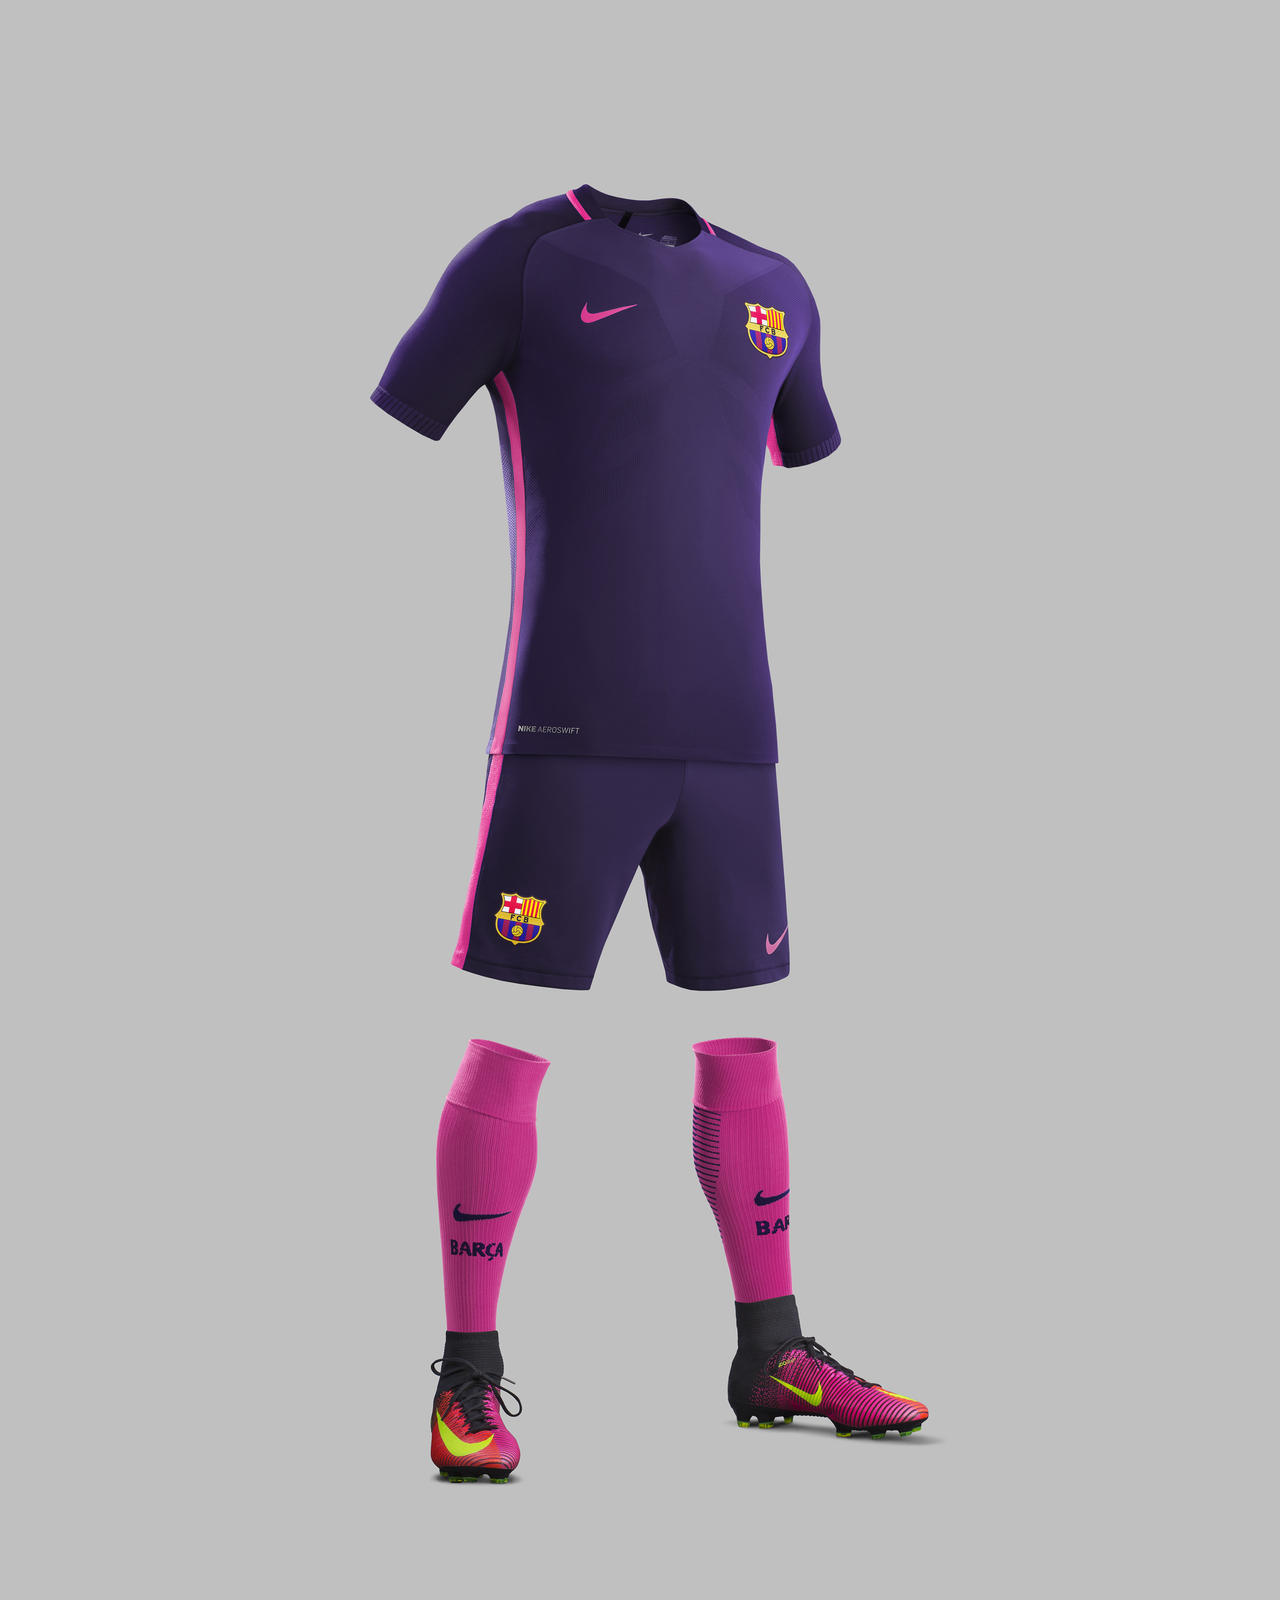 best service 7bba6 8bd39 FC BARCELONA AWAY KIT 2016-17 - Nike News